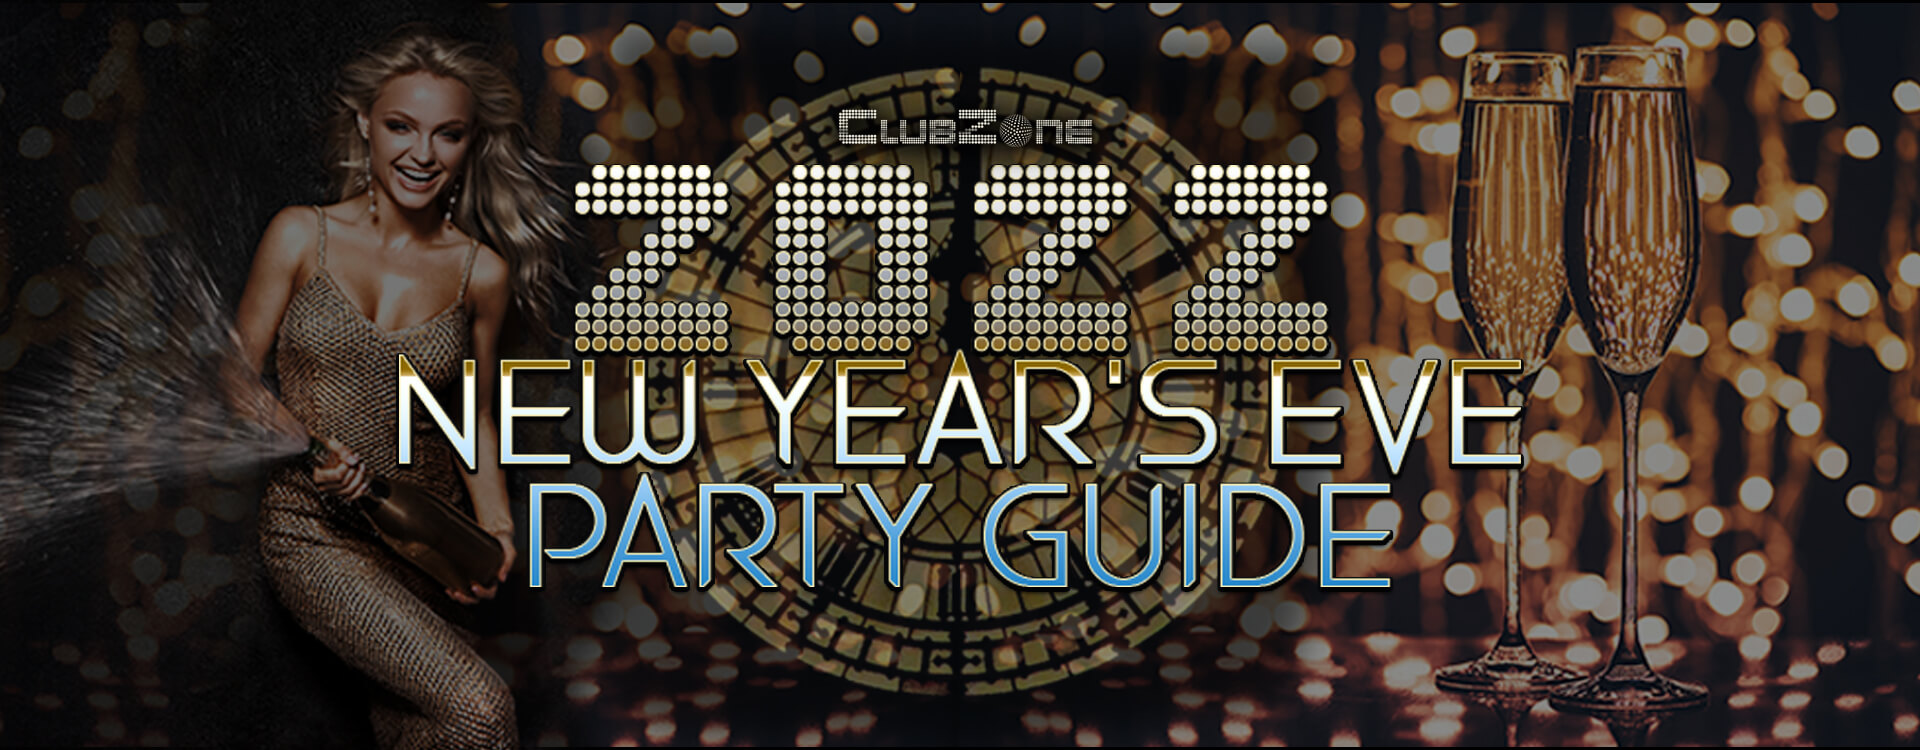 2022 New Years Eve Party Guide